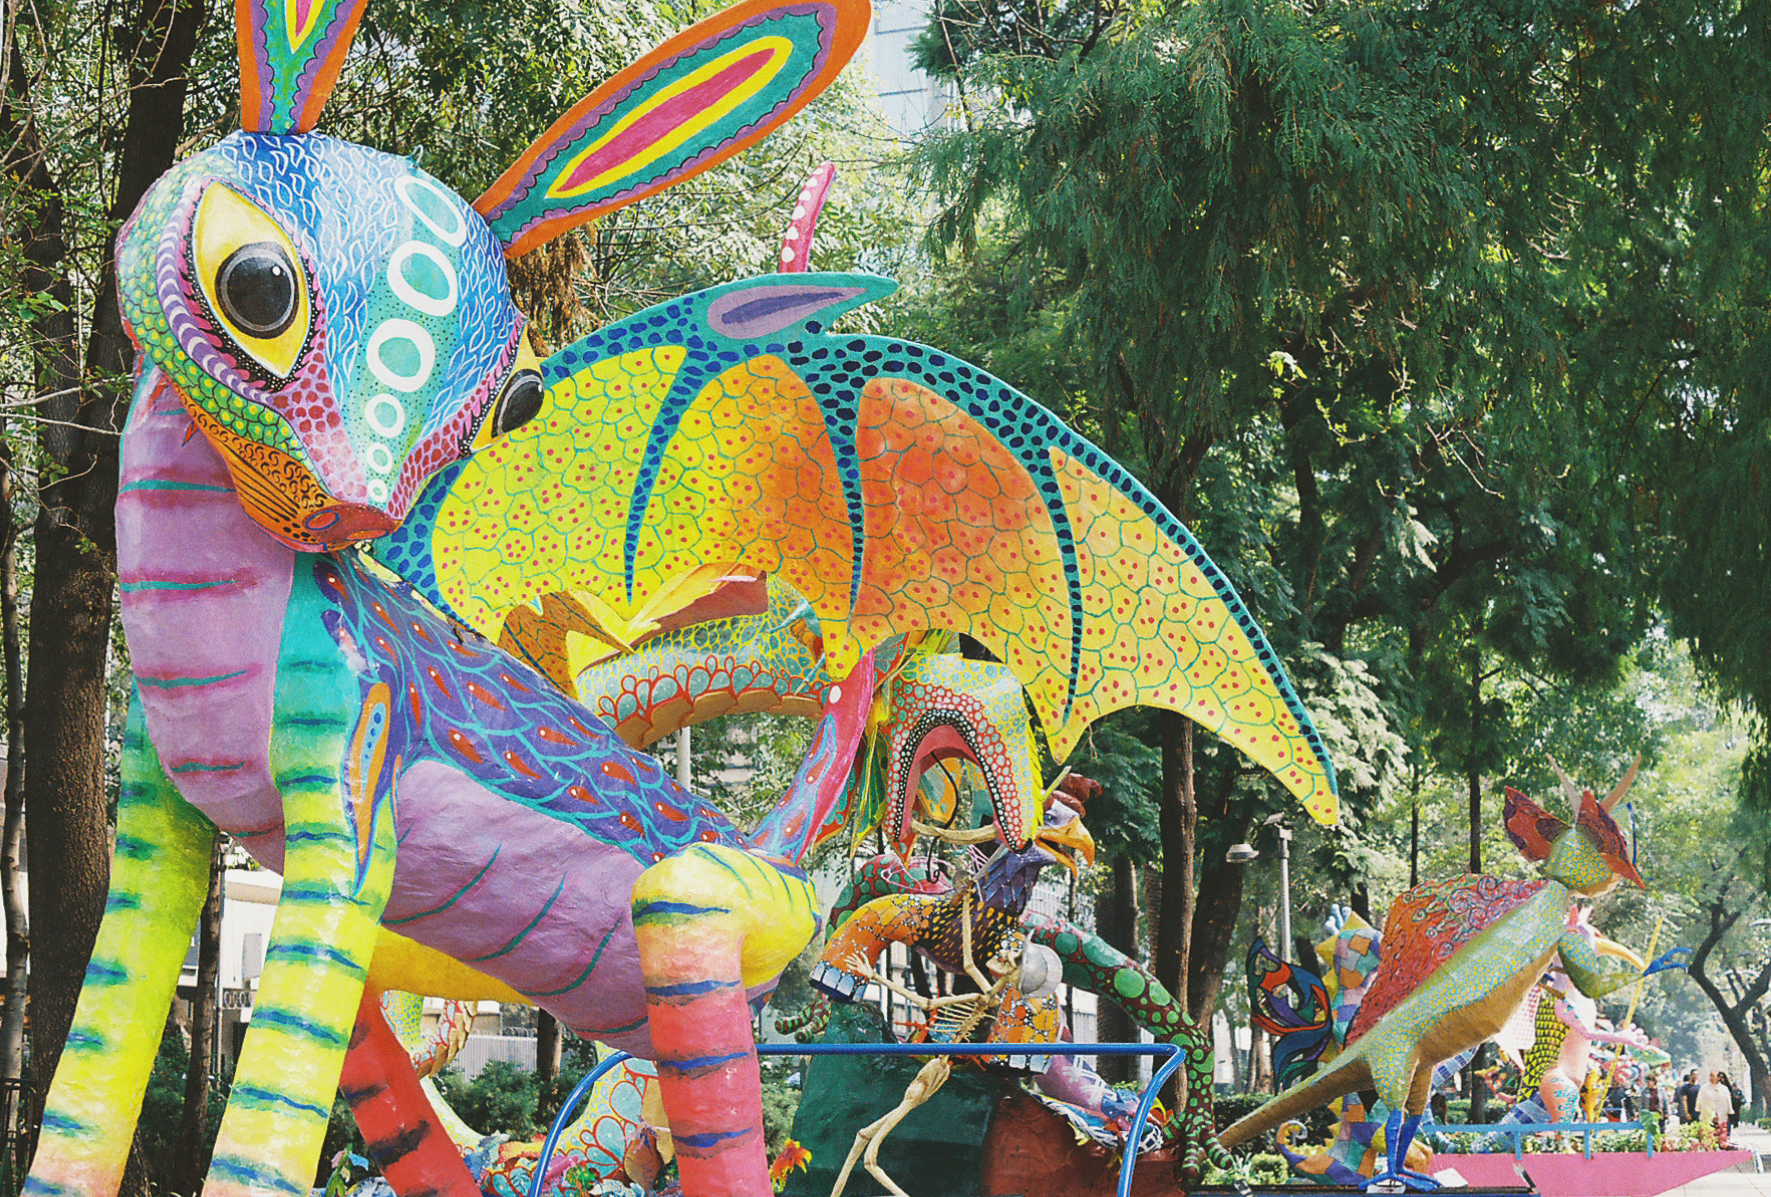 Paper mache sculptures or parade floats brightly painted to represent alebrijes. The spiritual animals of the afterlife. Mexico City. Photographer Nick Barry